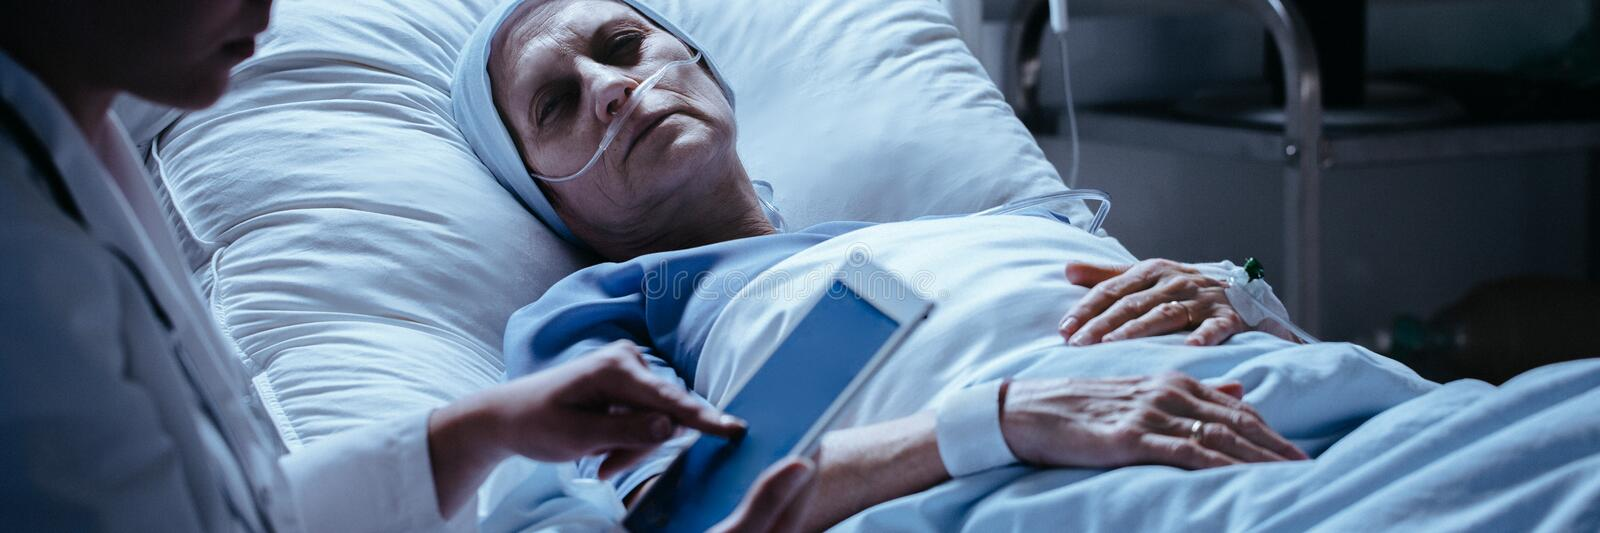 Sick, middle-aged woman looking sadly at her doctor who is check stock photos